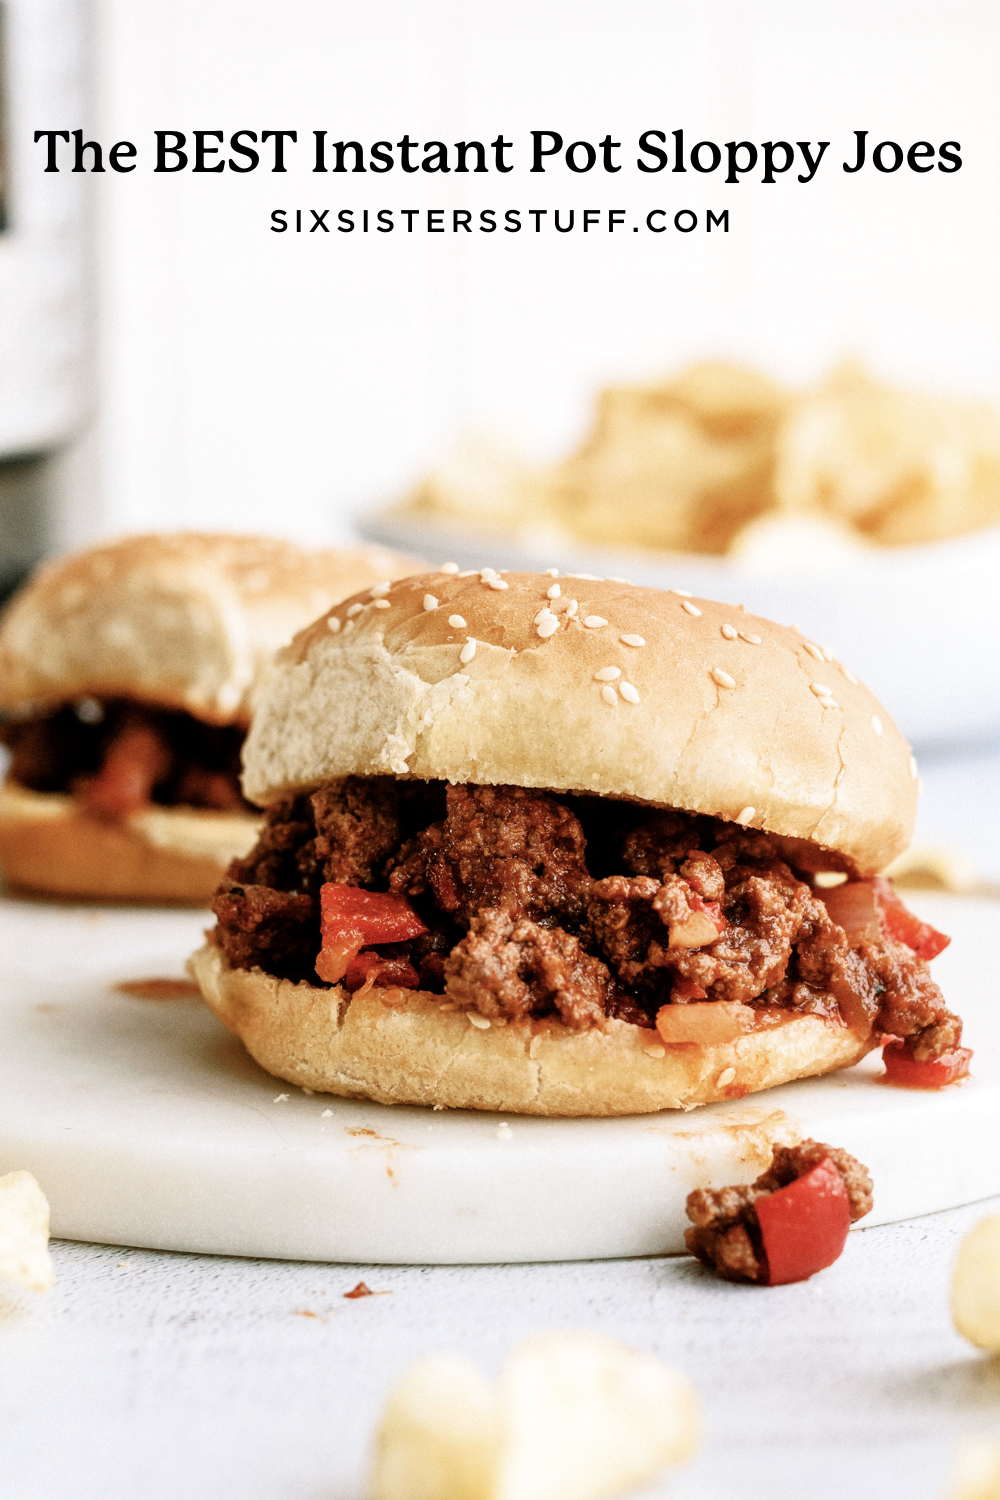 sloppy joes made in an instant pot on a platter